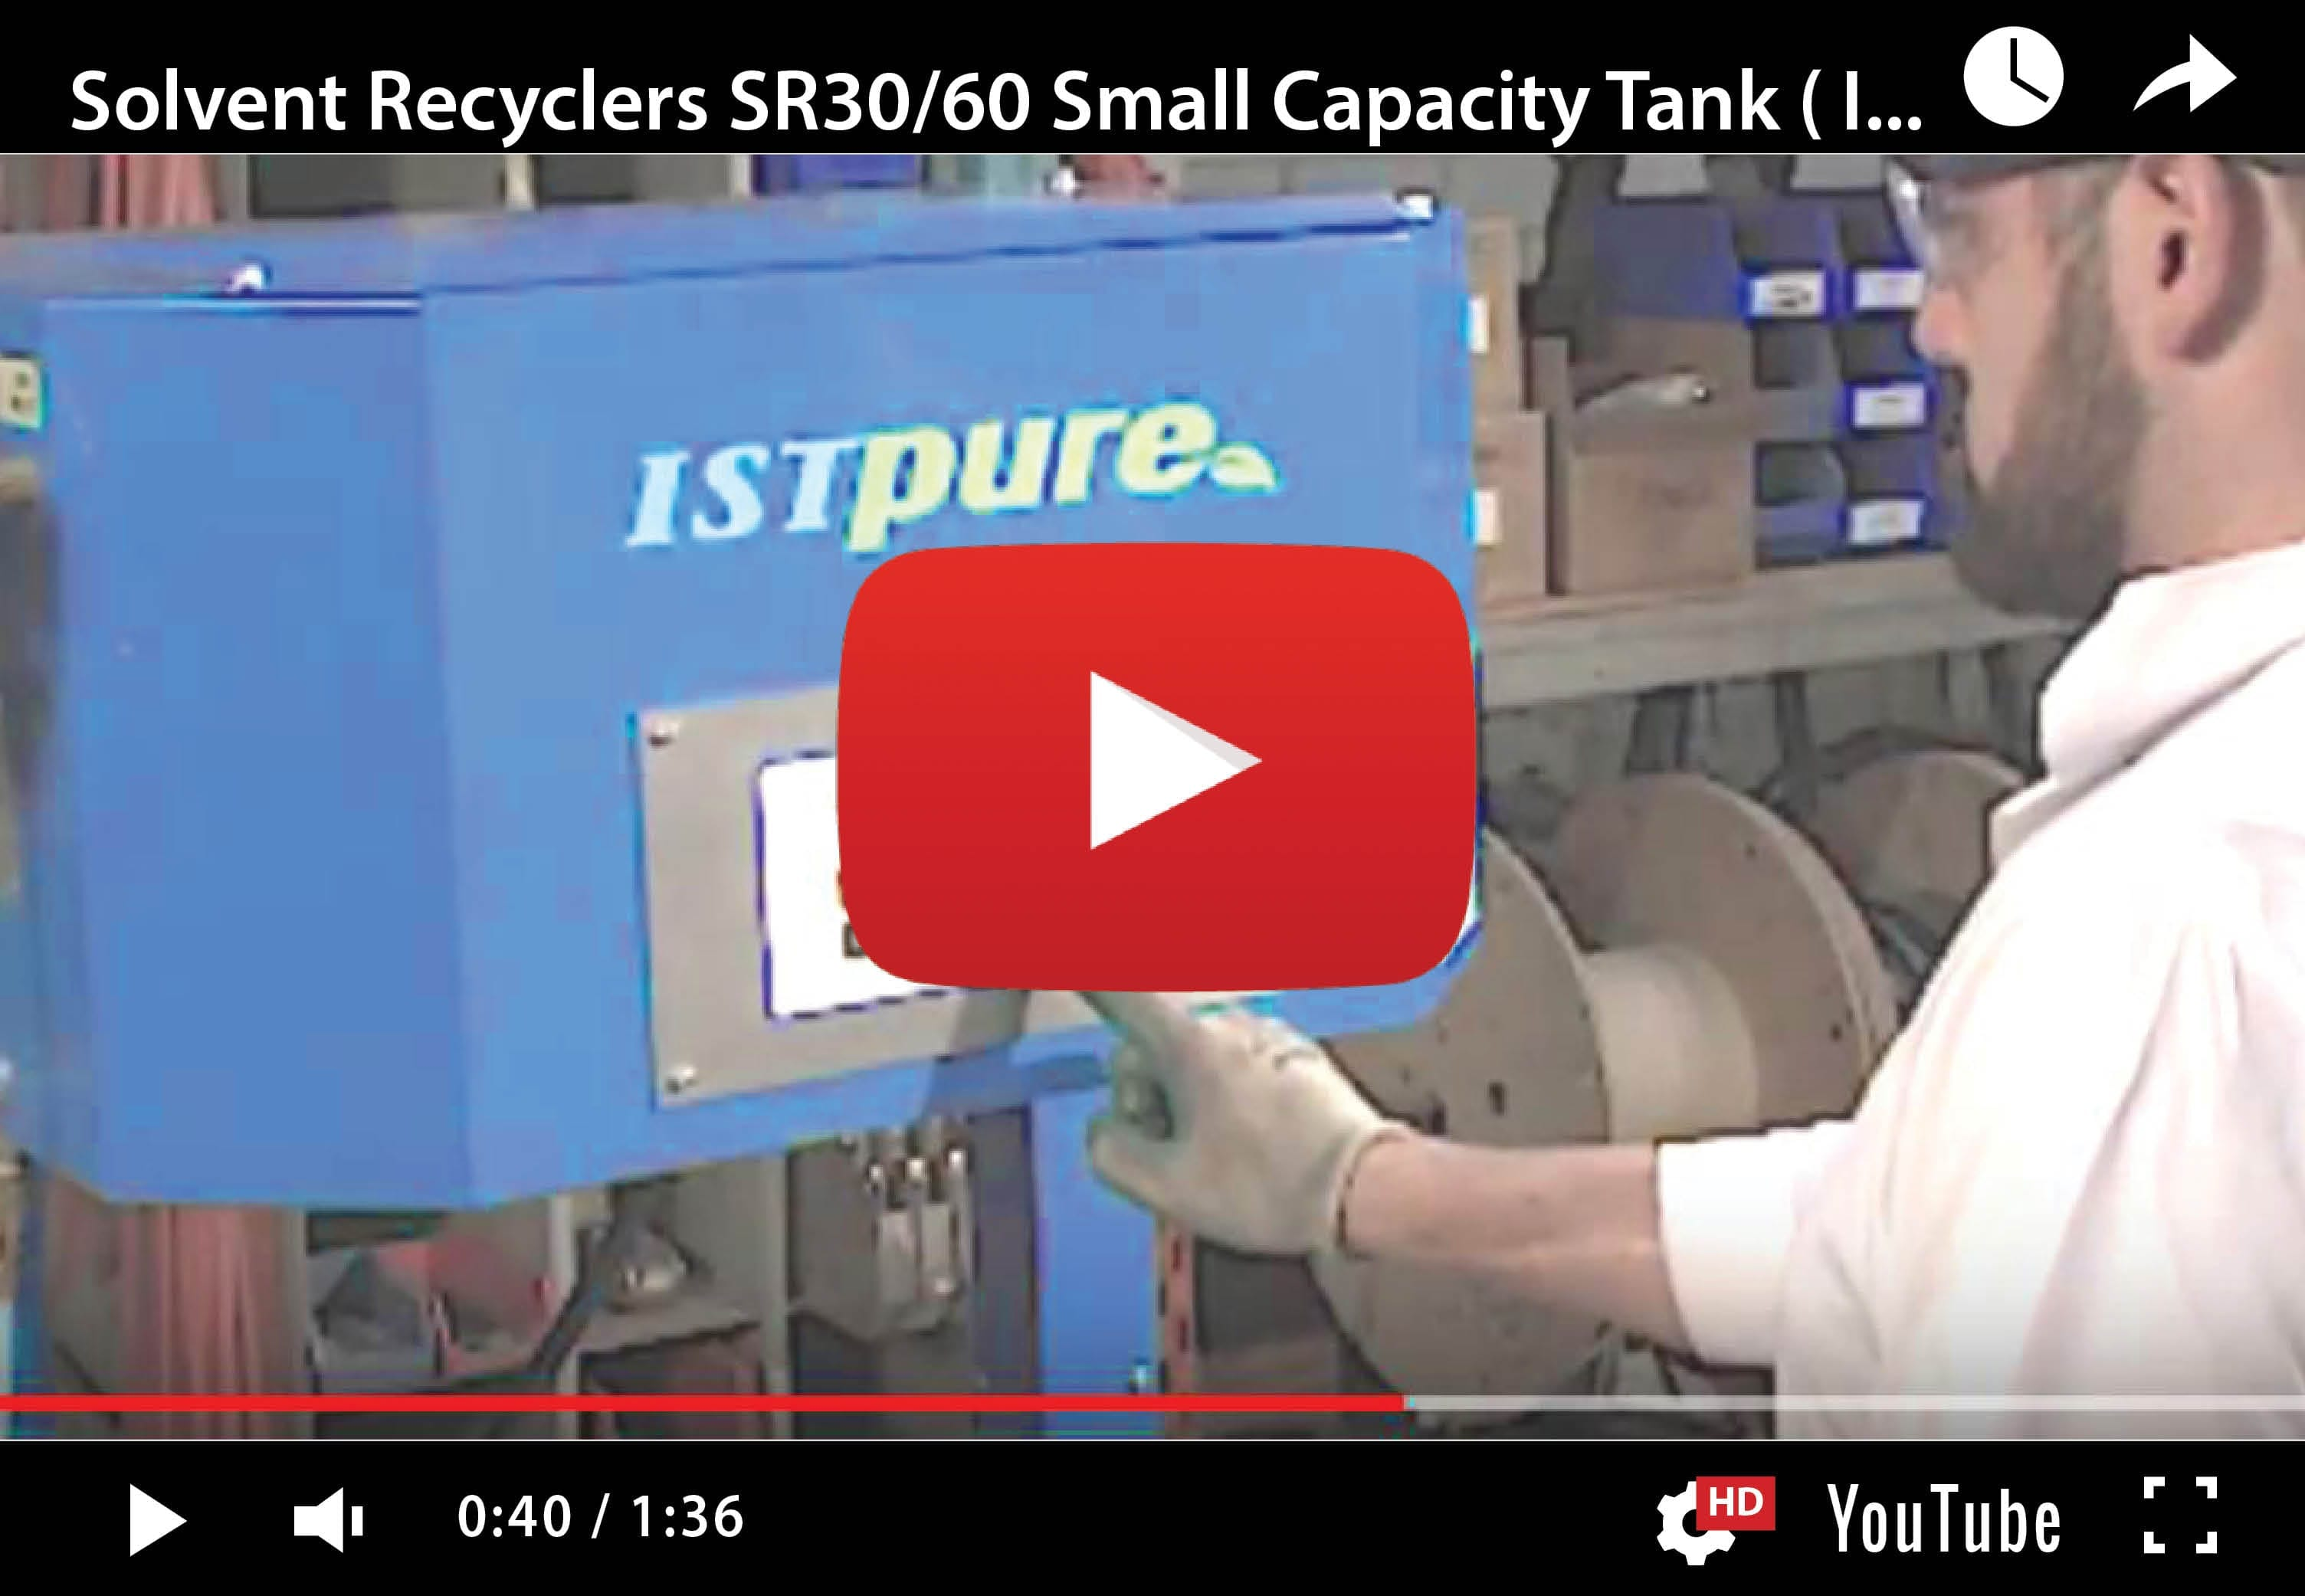 SR30-60 – Small Capacity Batch-Type Solvent Recyclers